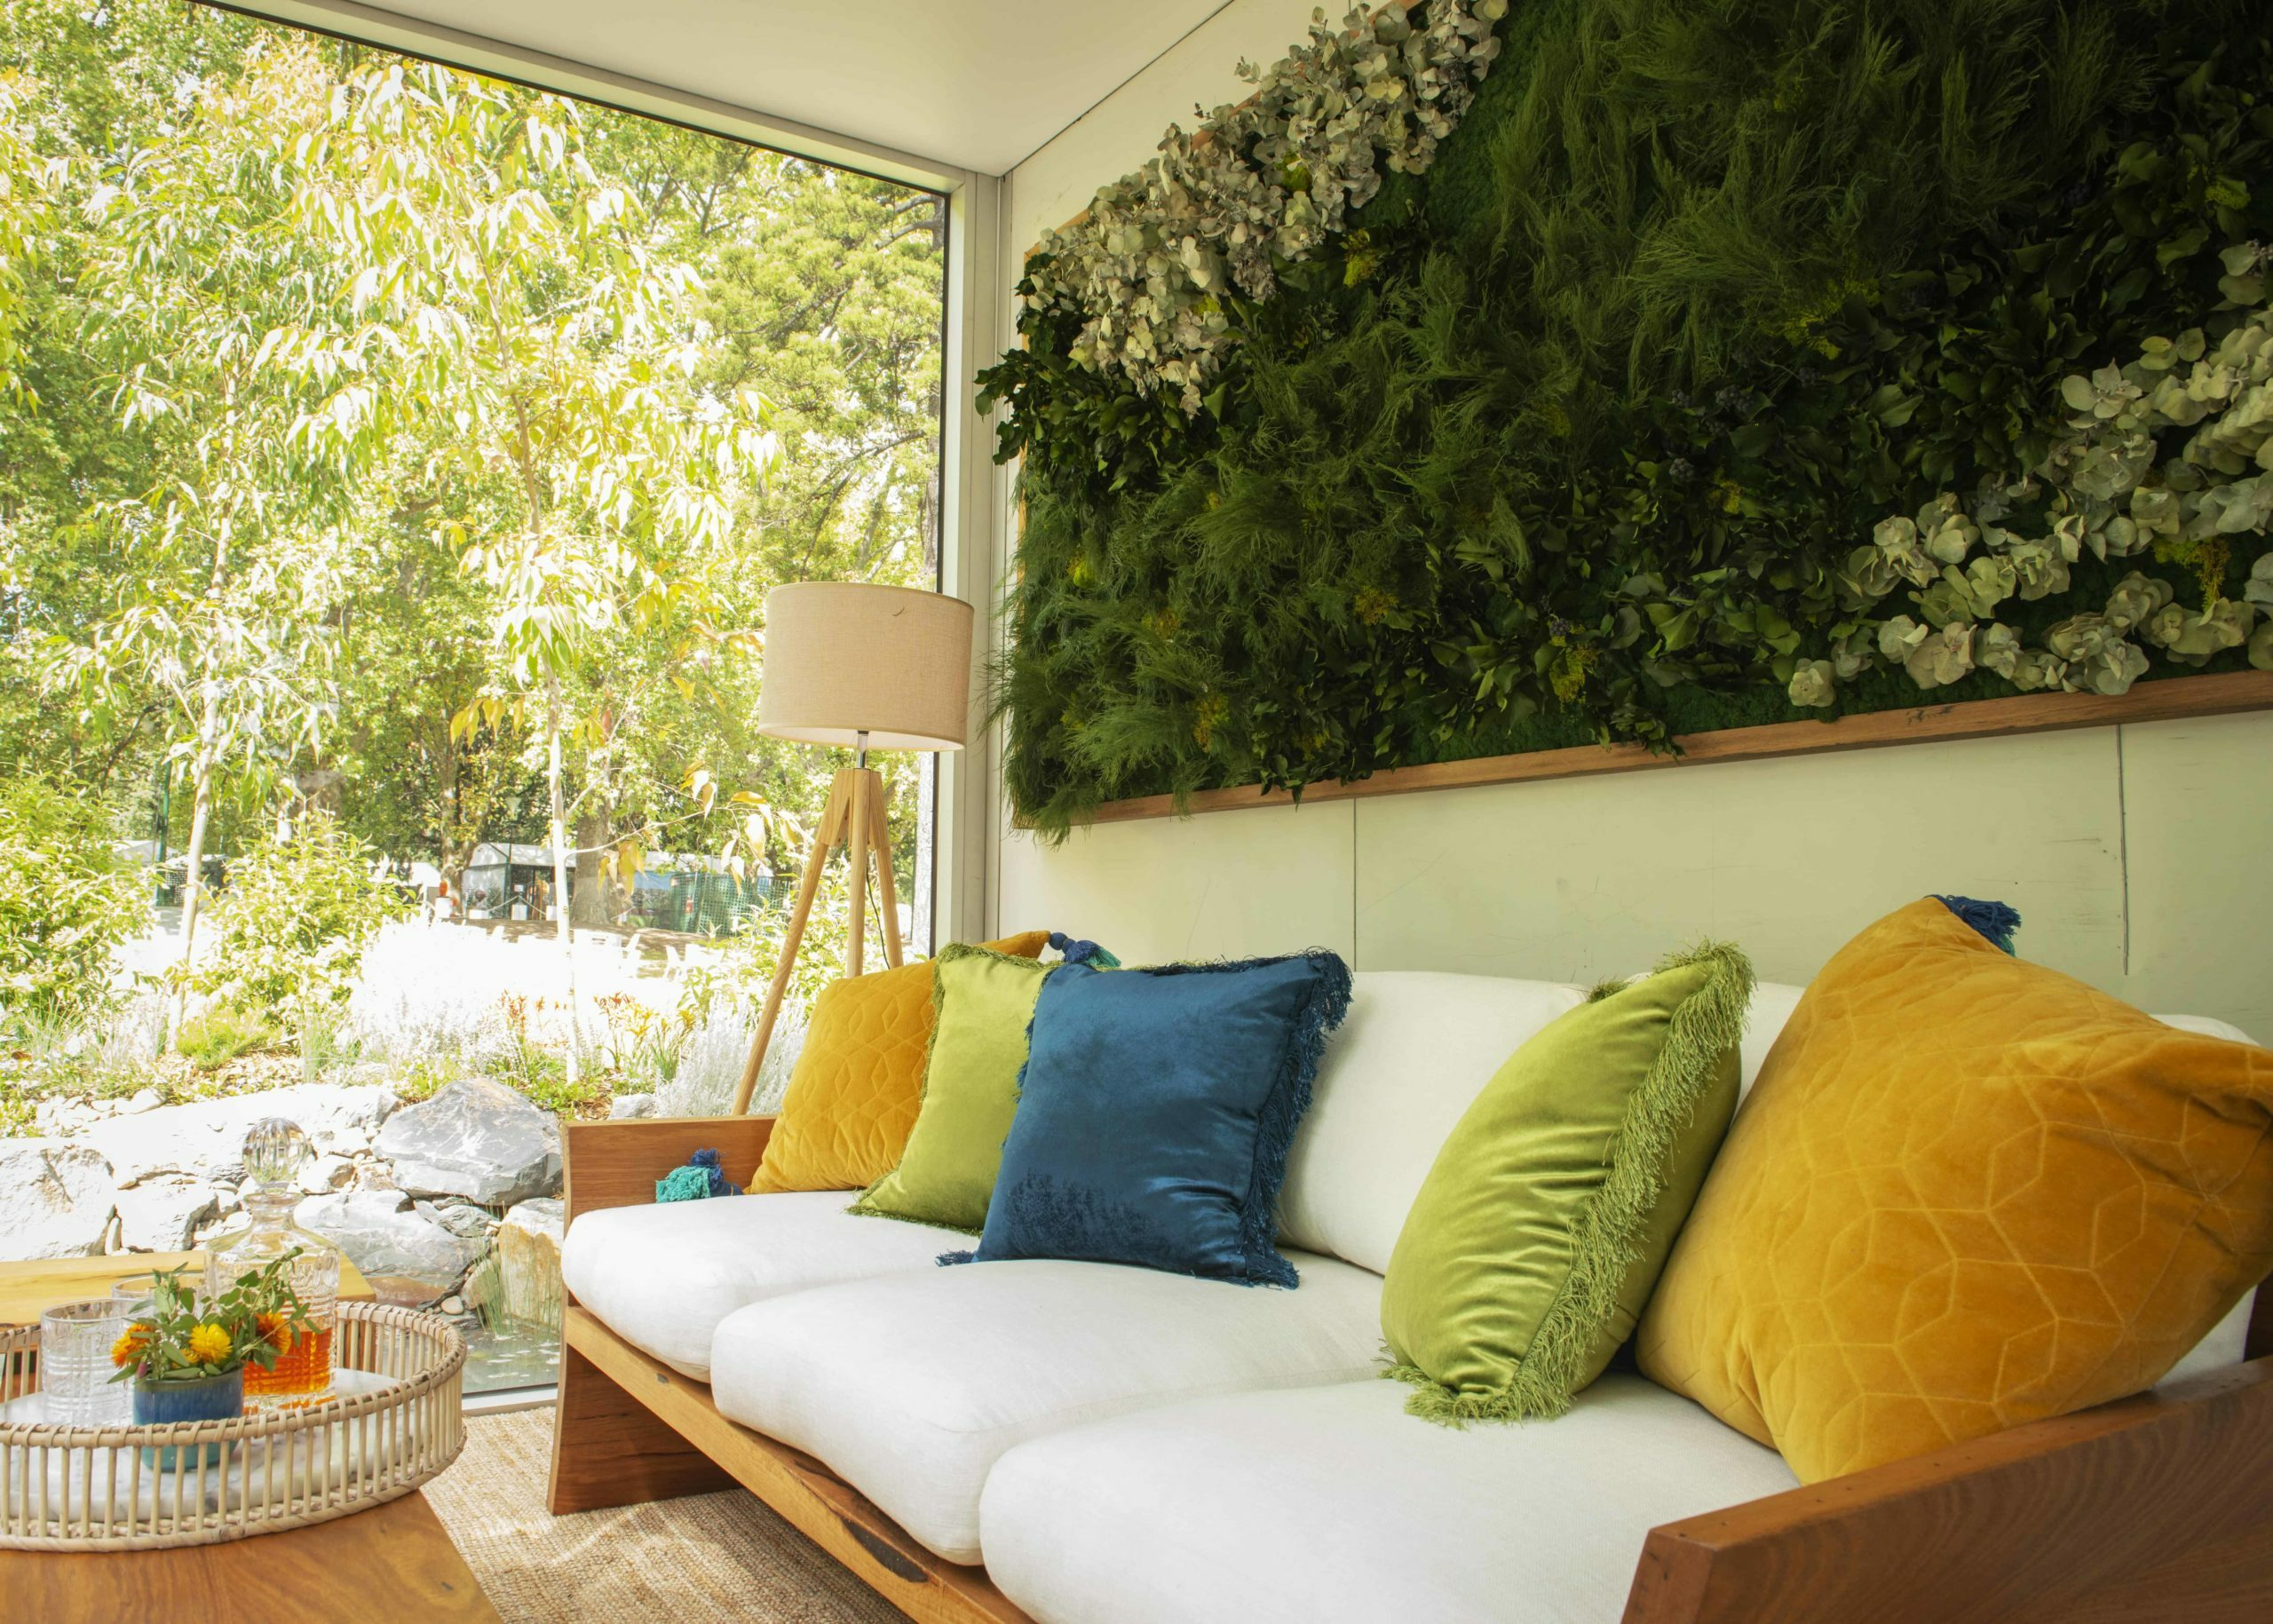 Timber sofa with plants